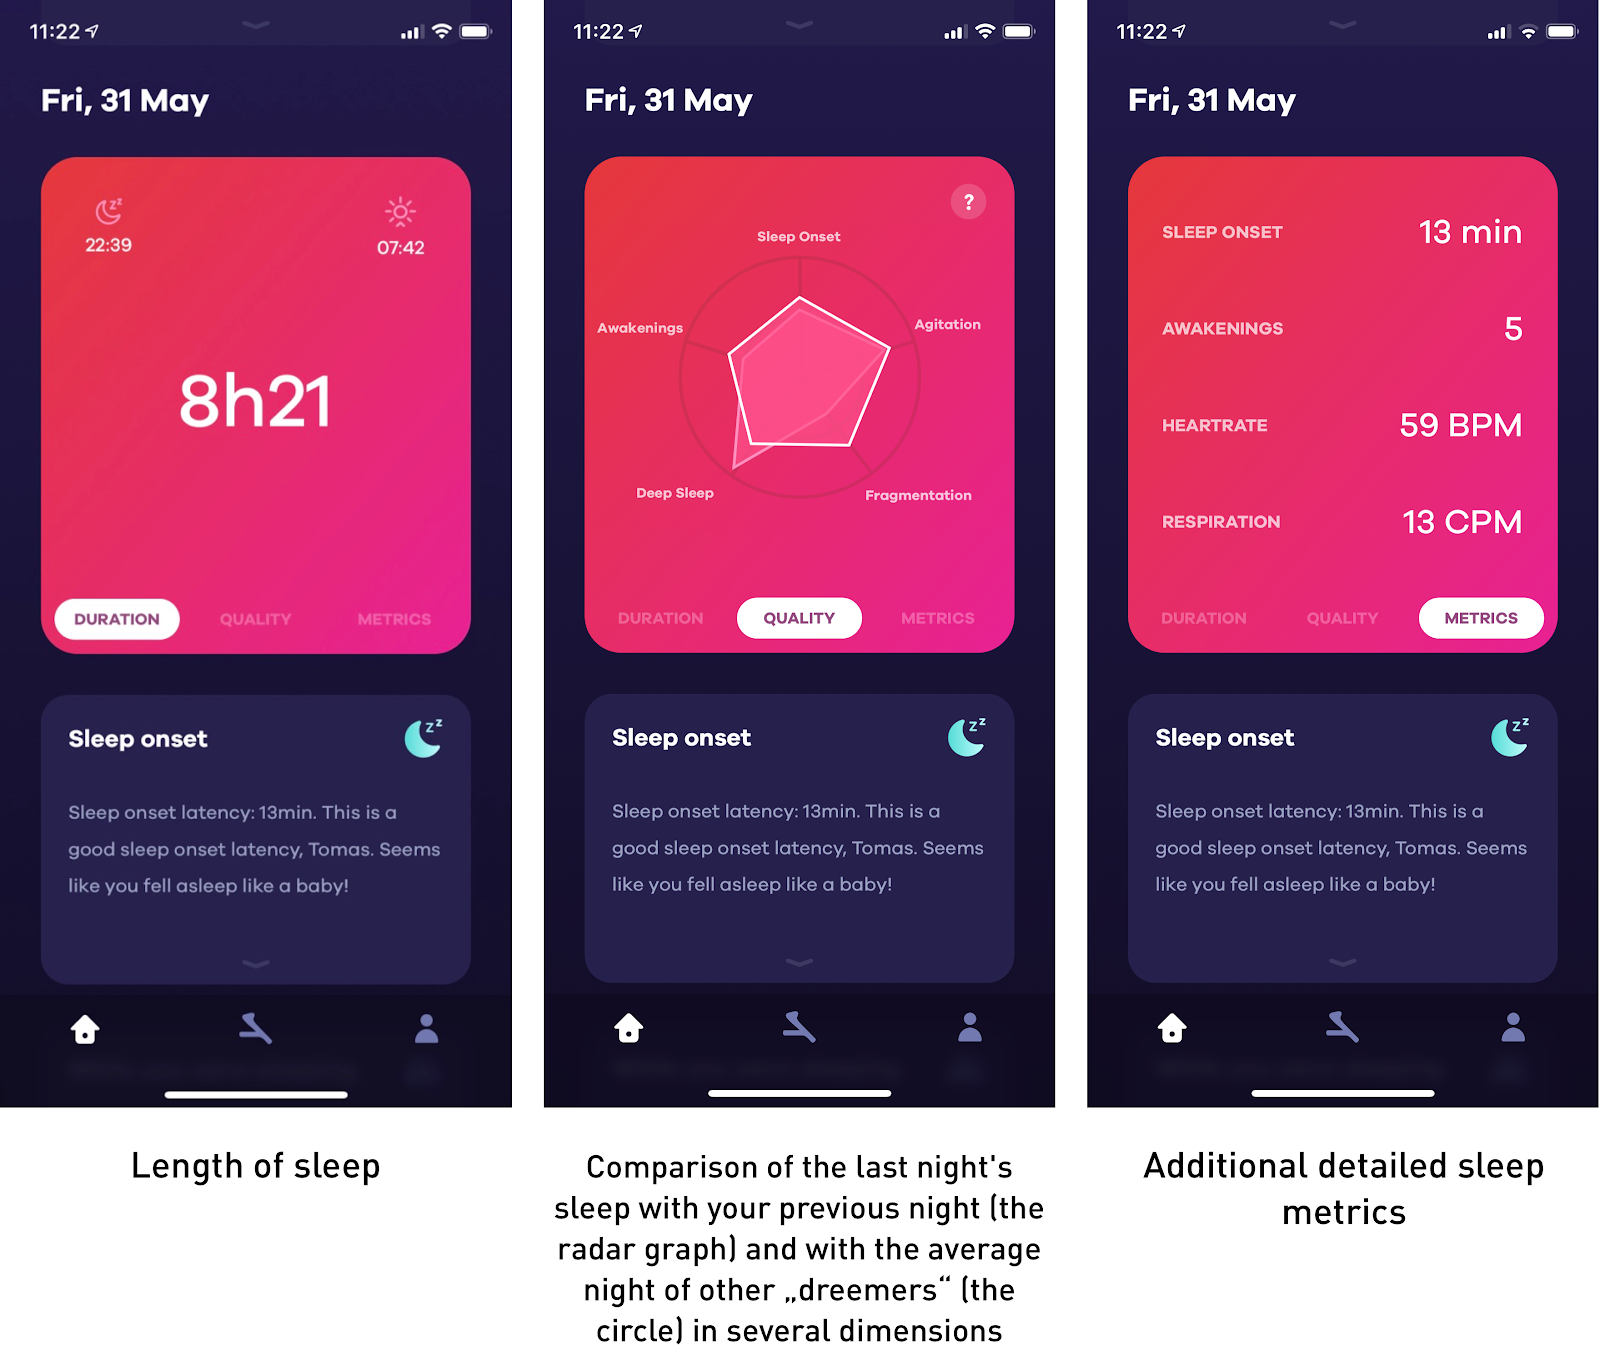 Dreaming about Better Sleep: Dreem, Oura and the Rest